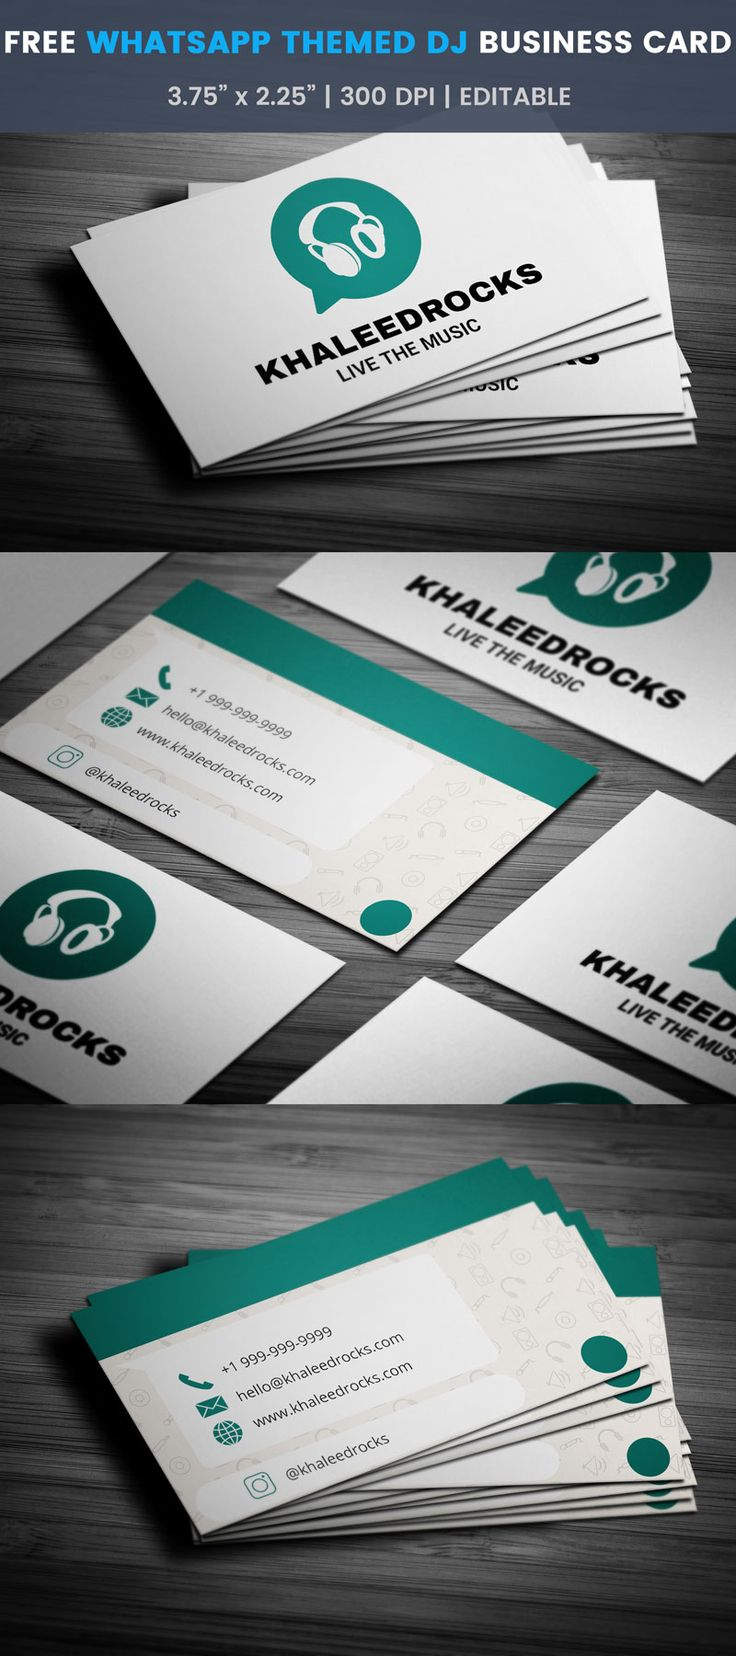 13 best free dj business cards images on pinterest free free whatsapp themed dj business card reheart Image collections